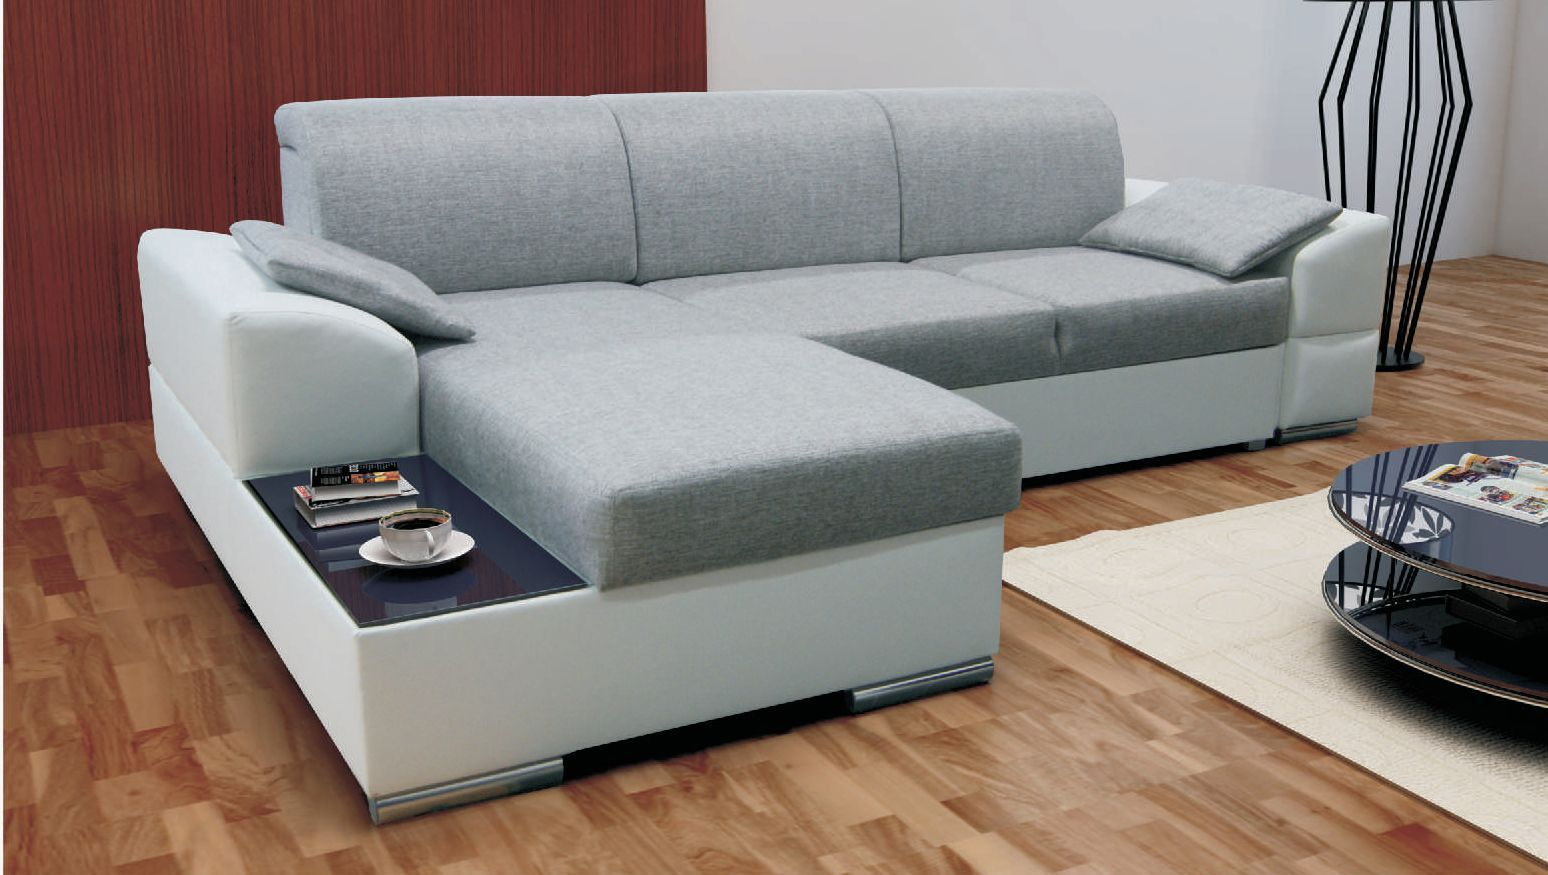 beautiful click clack sofa bed with storage image-Elegant Click Clack sofa Bed with Storage Plan